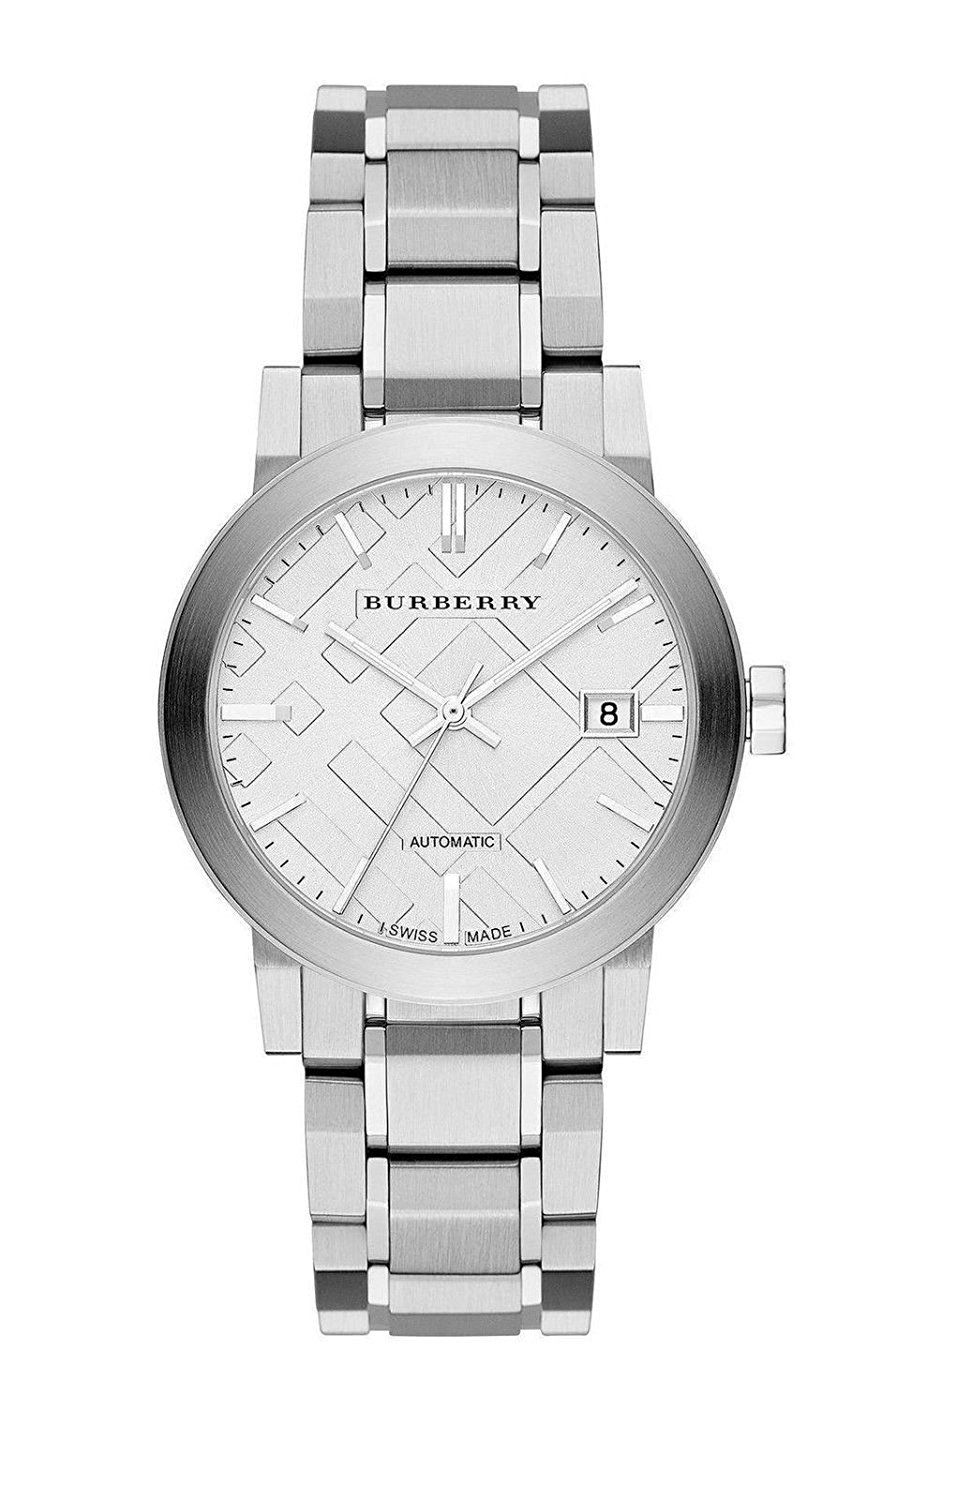 Burberry The City Unisex Watch BU9320 Startling review